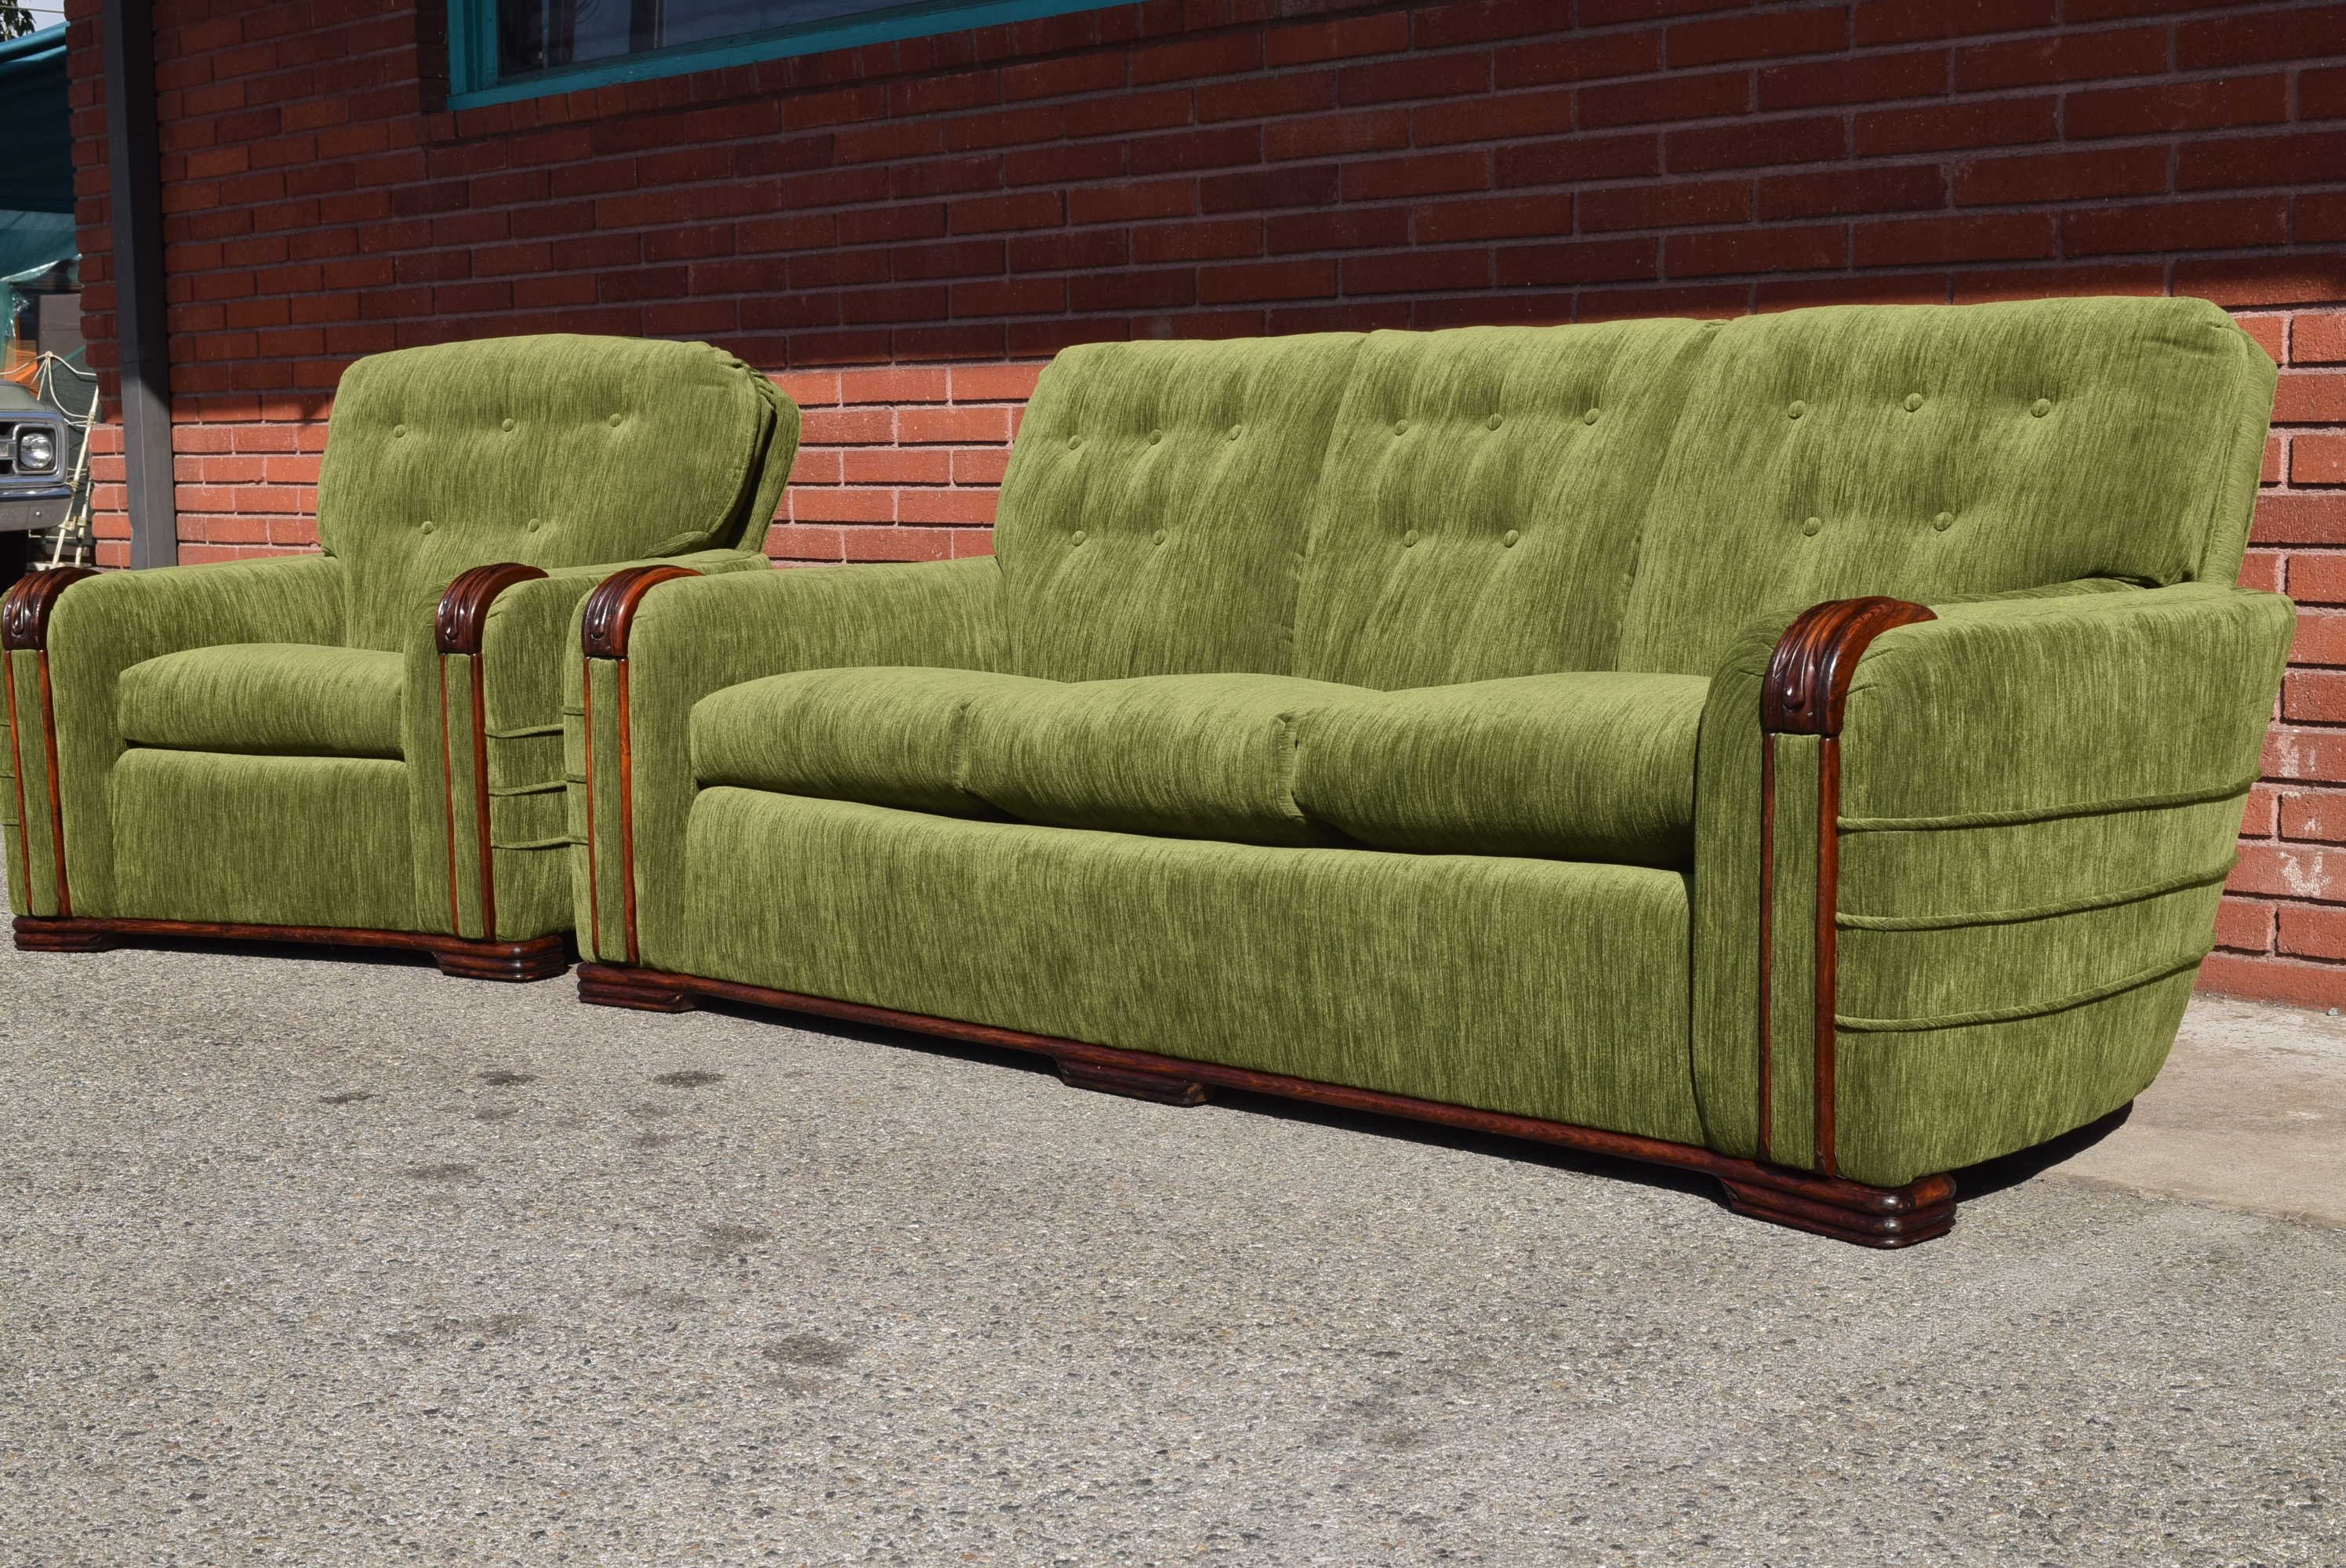 Vintage Art Deco Modern Green Velvet Sofa U0026 Chair   A Pair   Image 4 Of